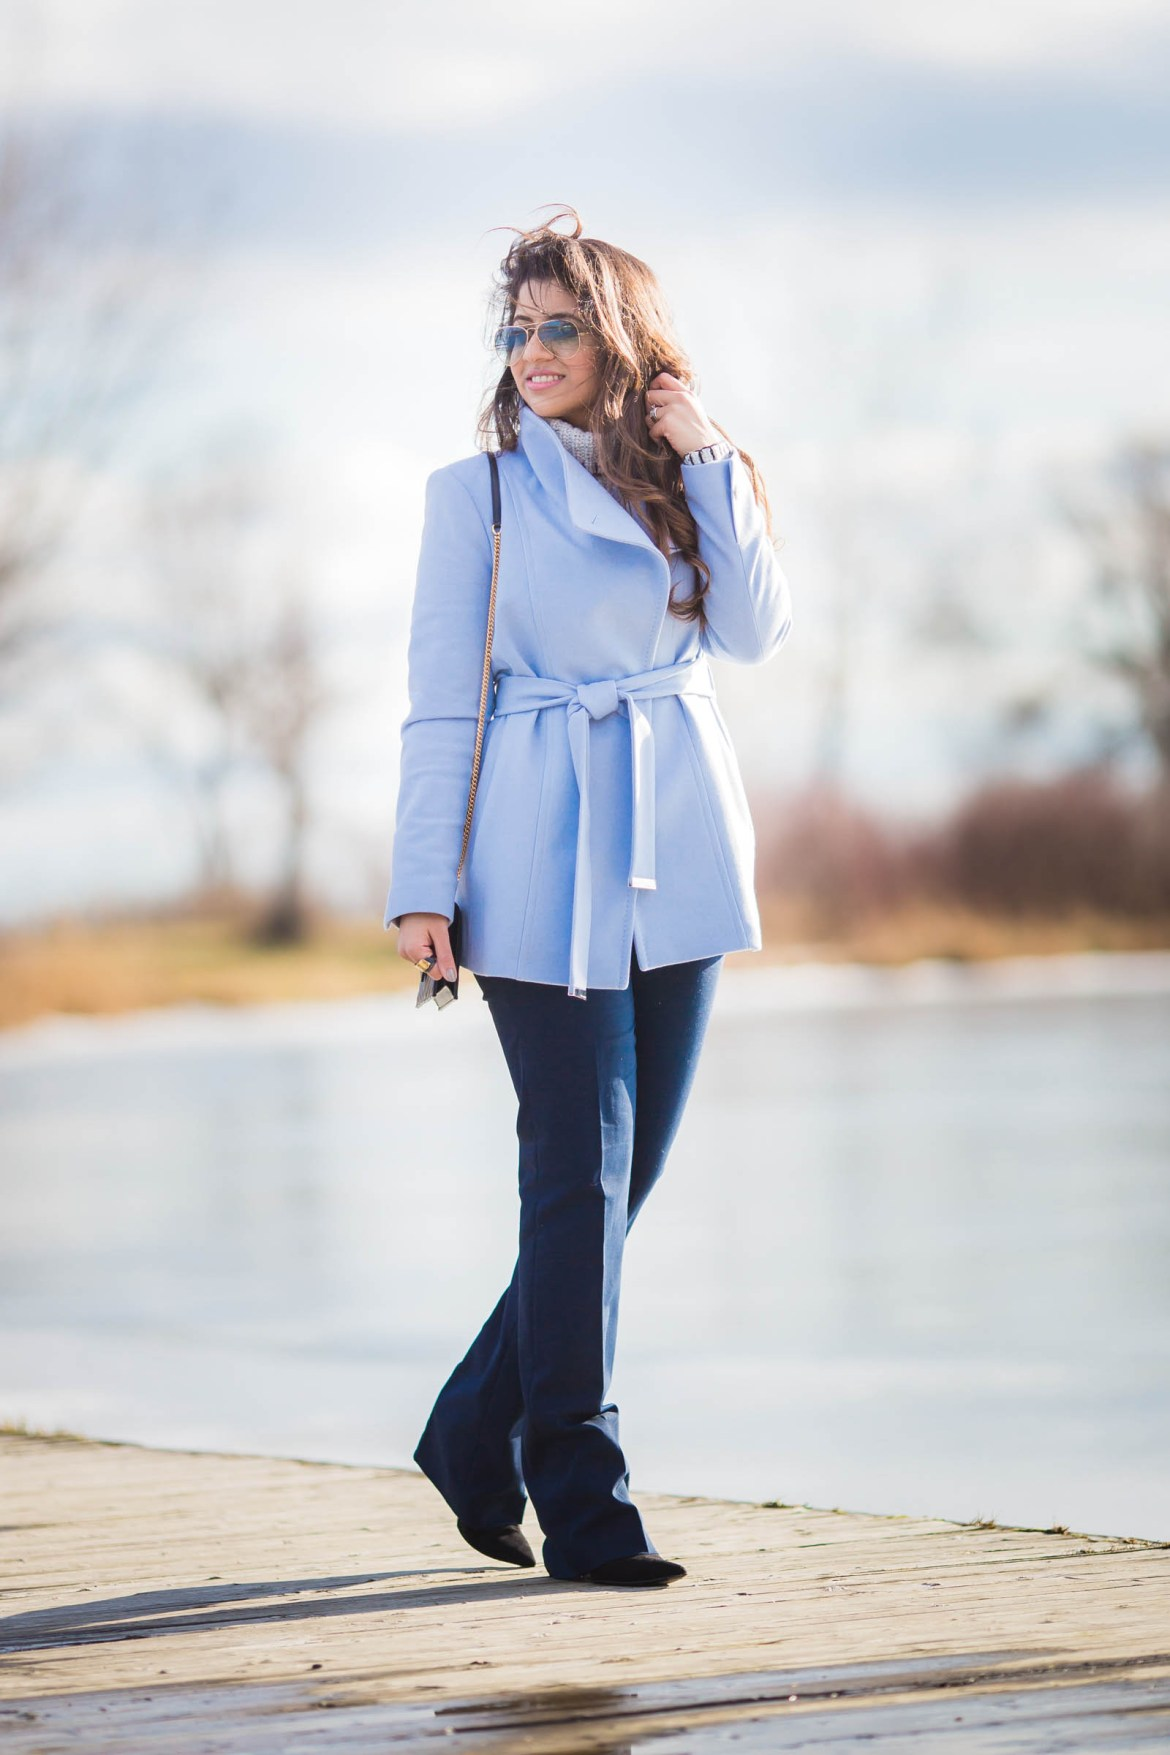 sky-blue-pea-coat-ted-baker-ysl-zara-wide-leg-pants-ray-ben-cold-spring-fashion-blogger-stylist-4